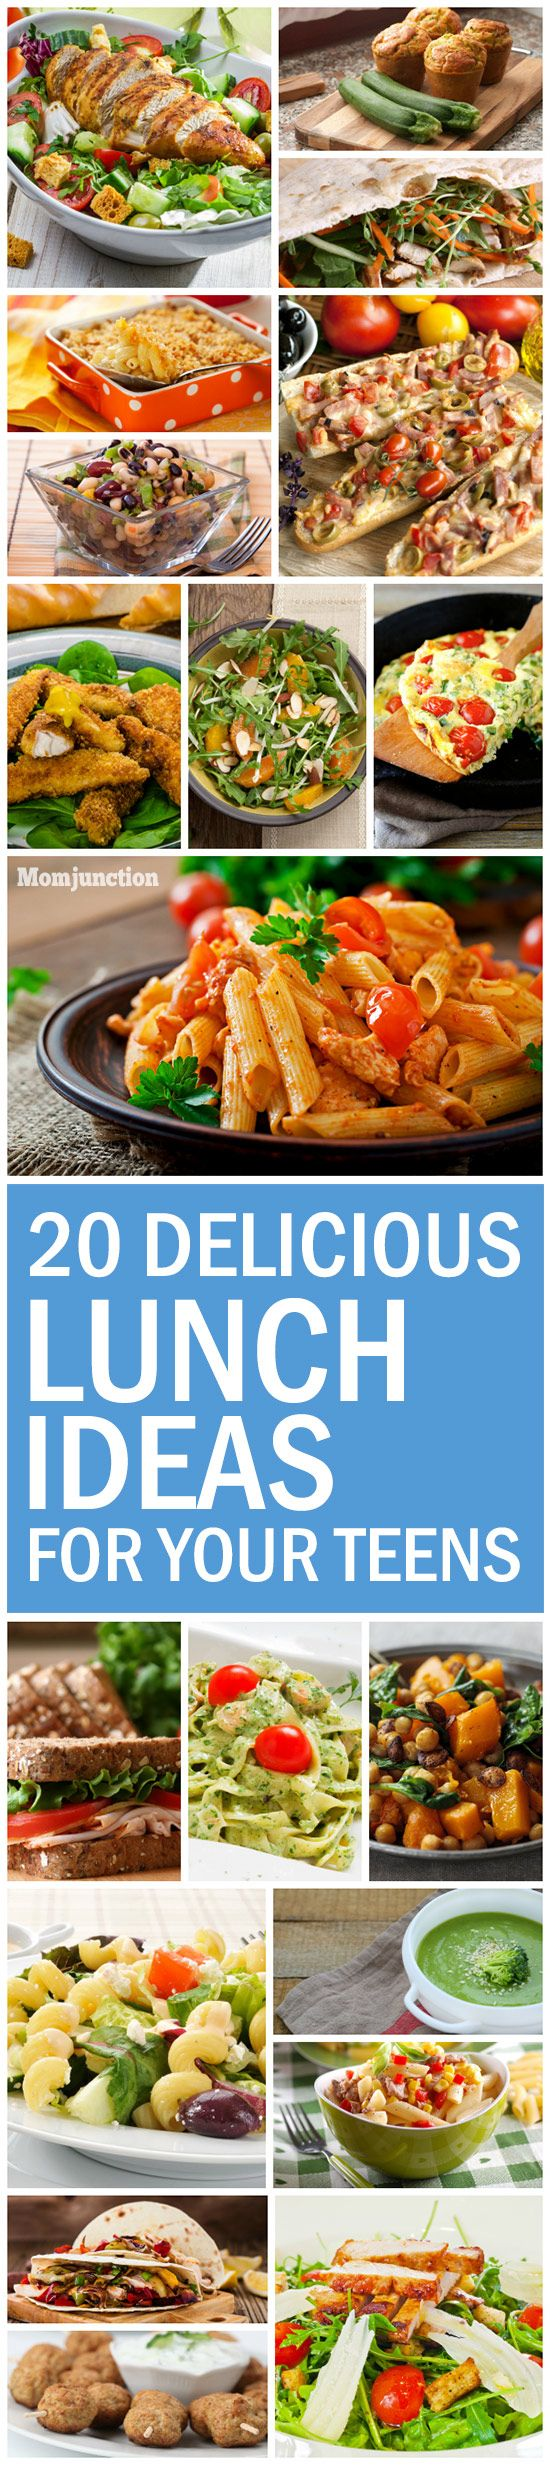 17 Best Ideas About Kids Healthy Lunches On Pinterest